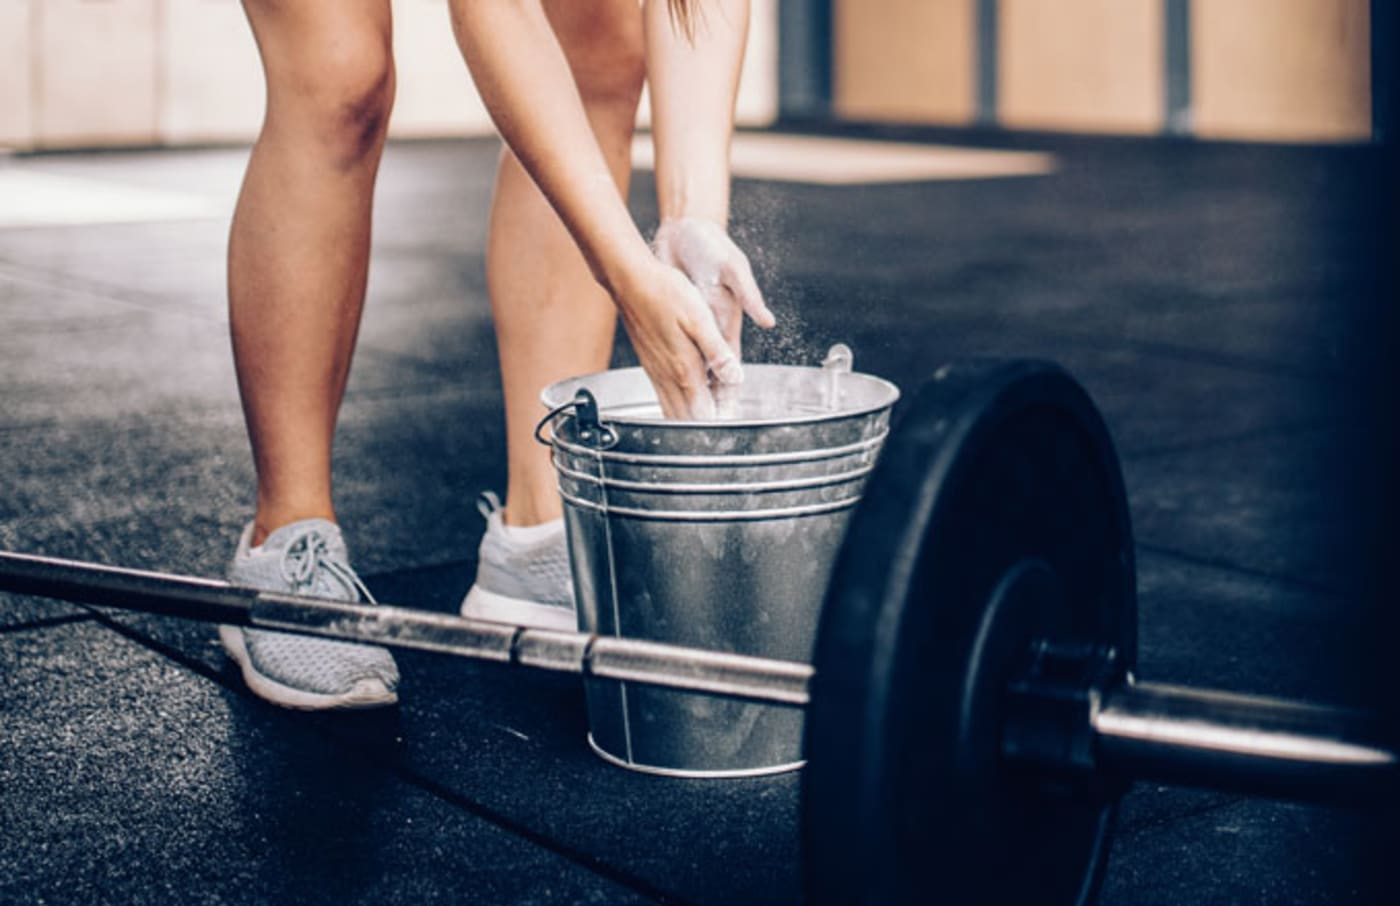 Stock image of a weightlifter prepping.